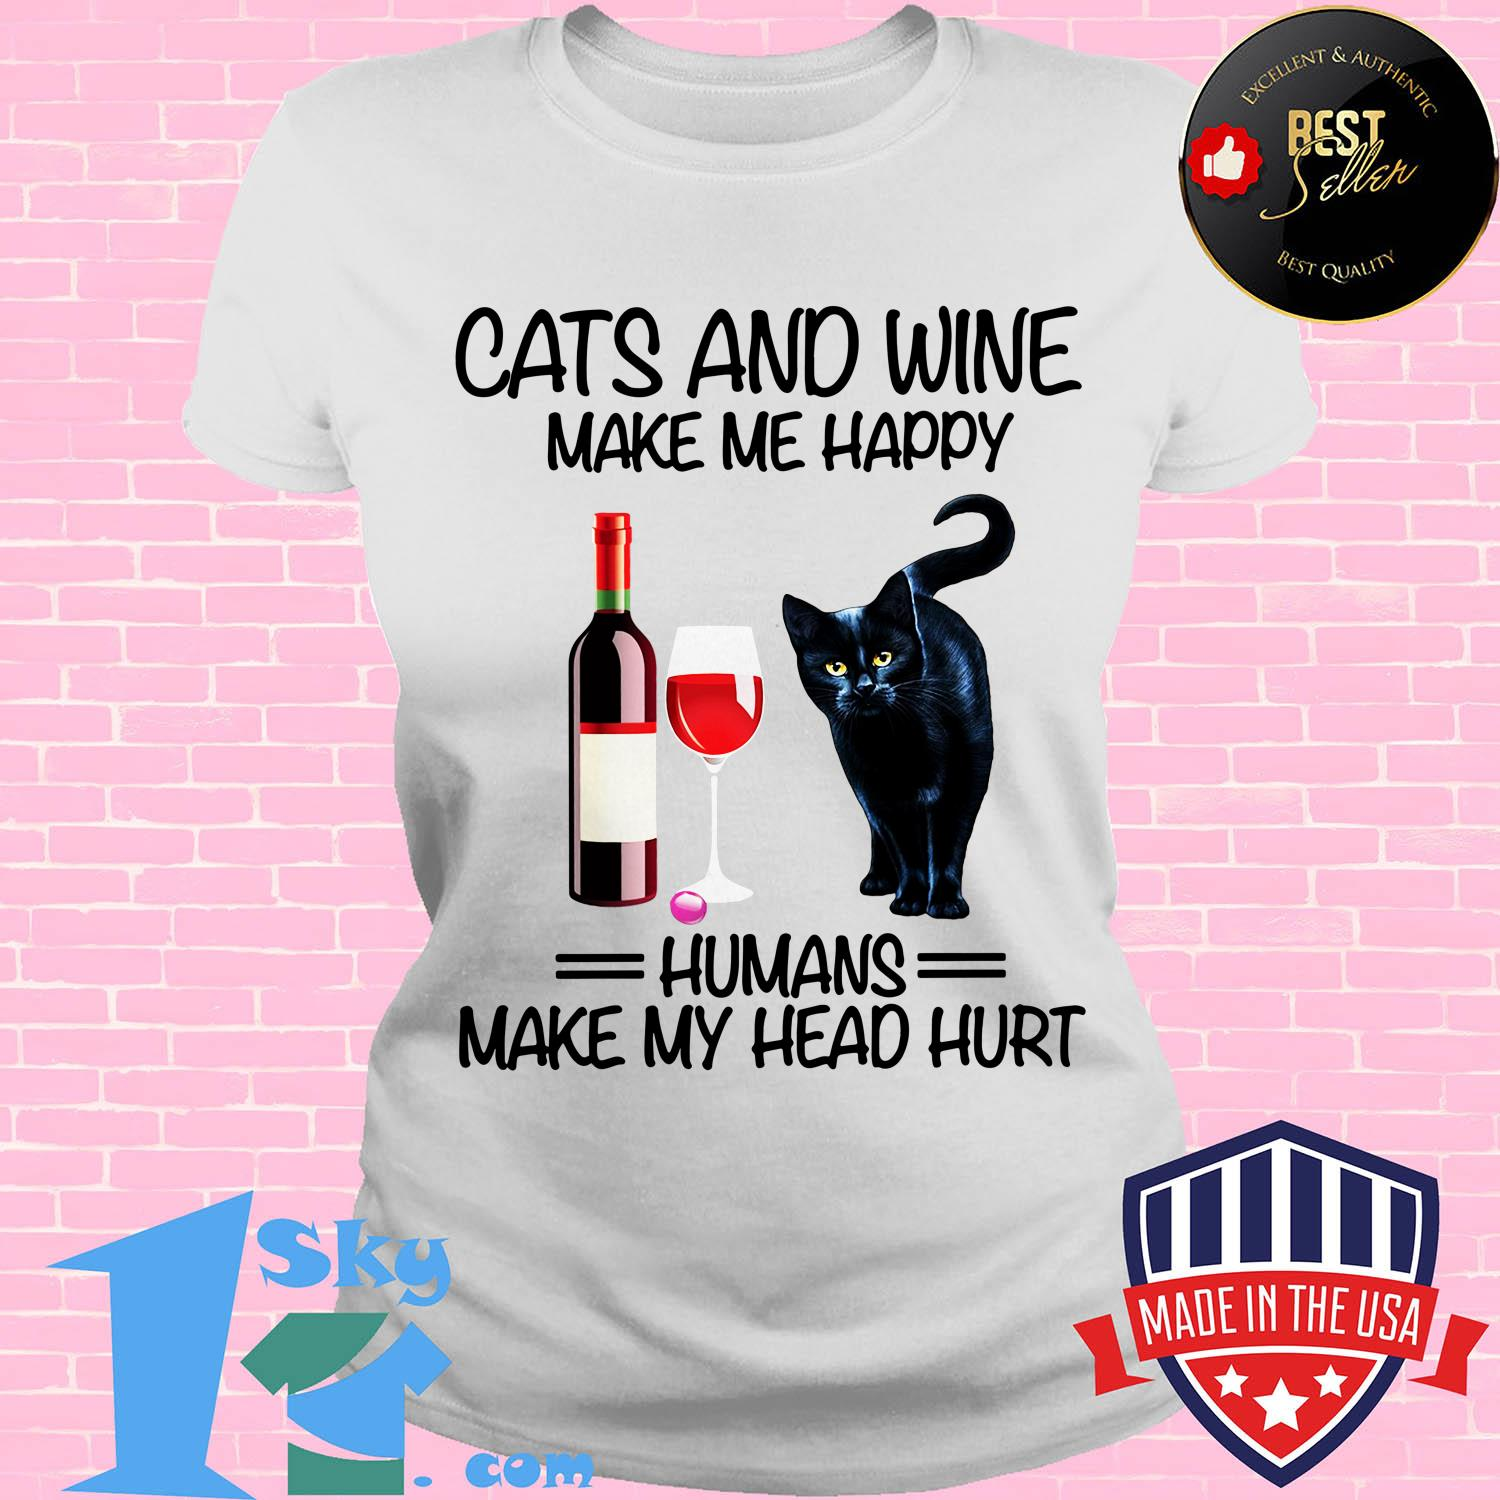 cats and wine make me happy humans make my head hurt ladies tee - Cats and wine make me happy humans make my head hurt shirt